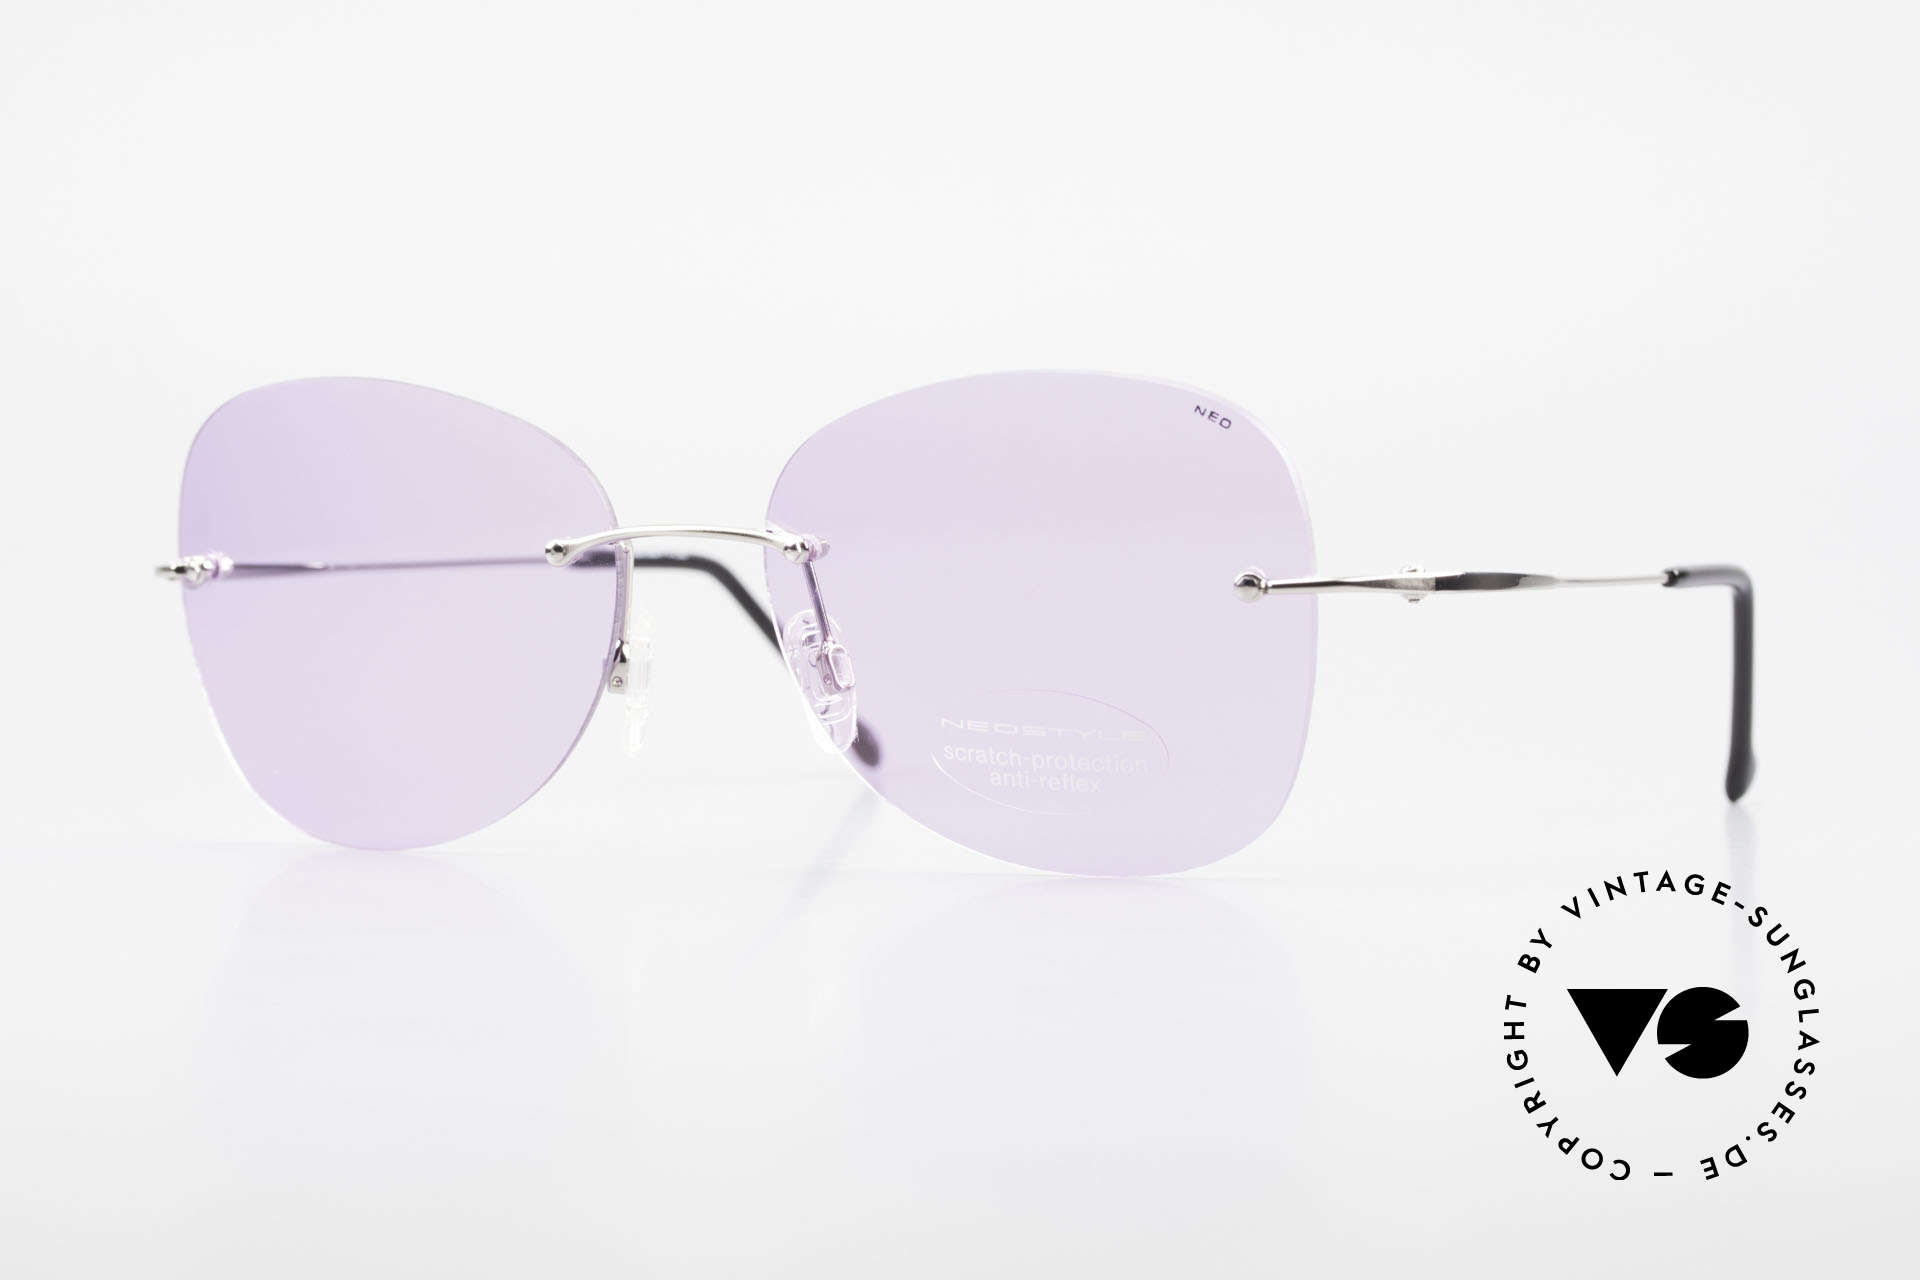 Neostyle Holiday 2051 Rimless XXL Sunglasses Ladies, rimless XXL sunglasses for ladies from the 1990s, Made for Women